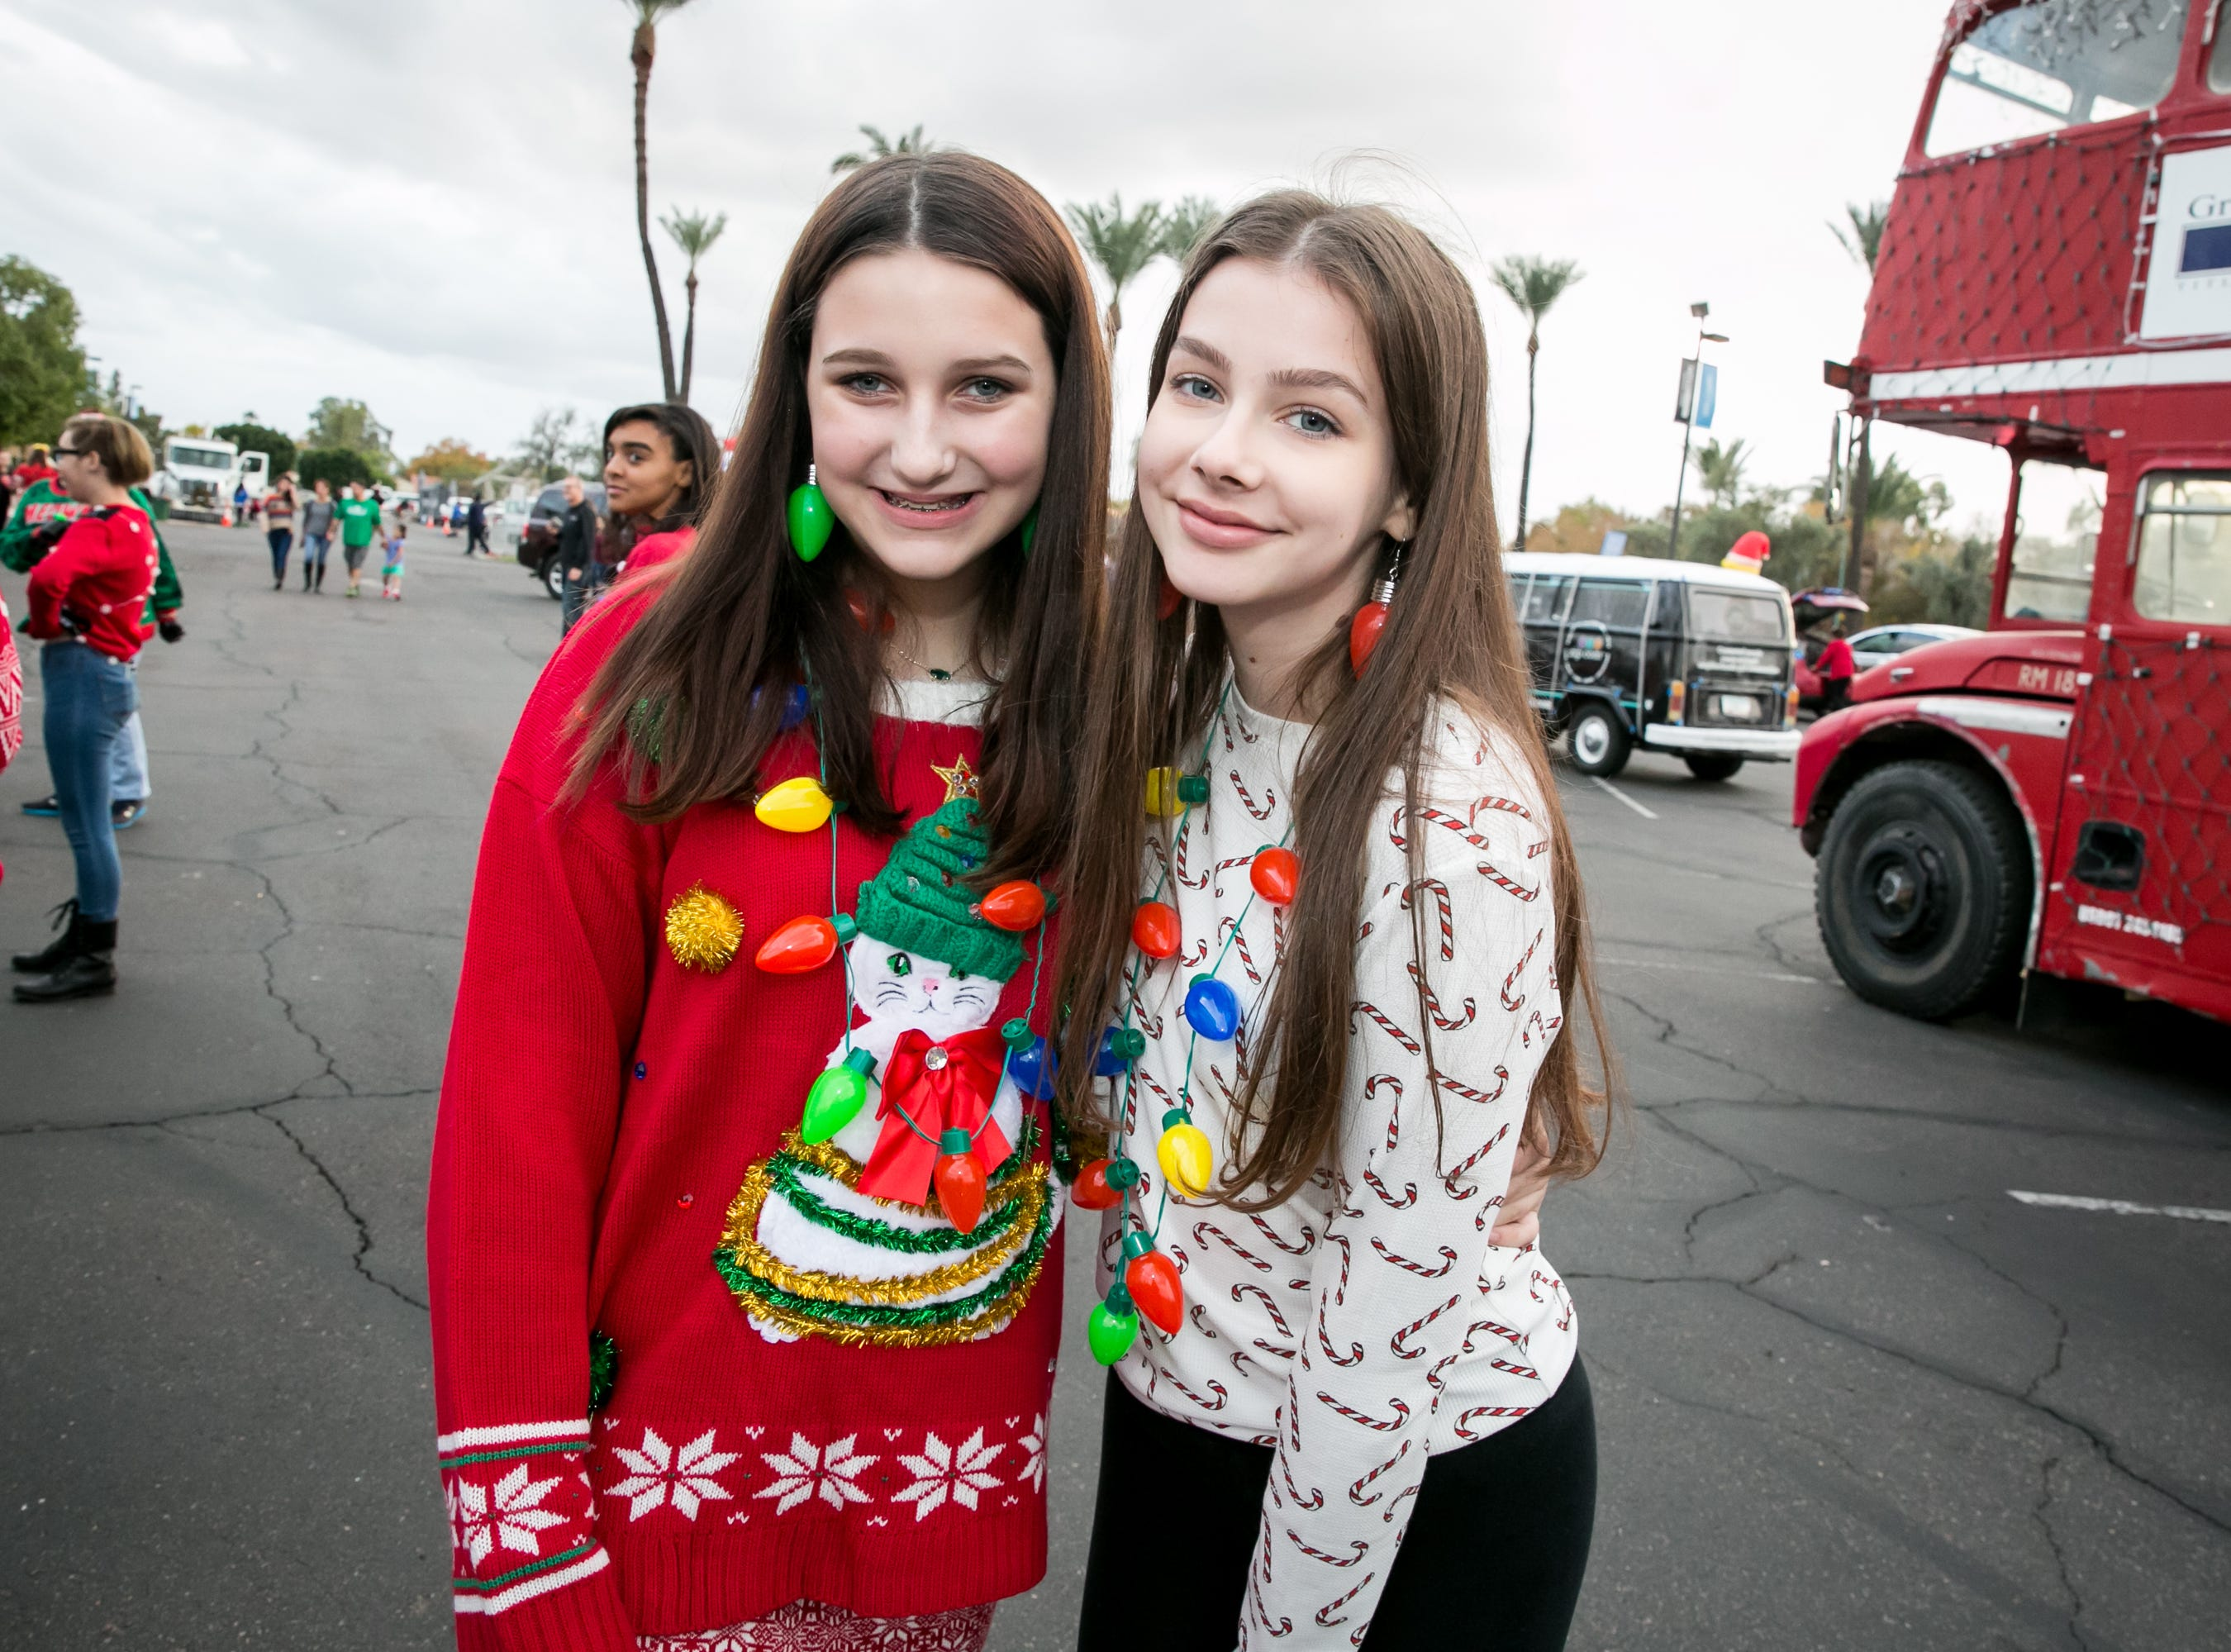 These two made great jewelry choices during the APS Electric Light Parade in Central Phoenix on Saturday, December 1, 2018.